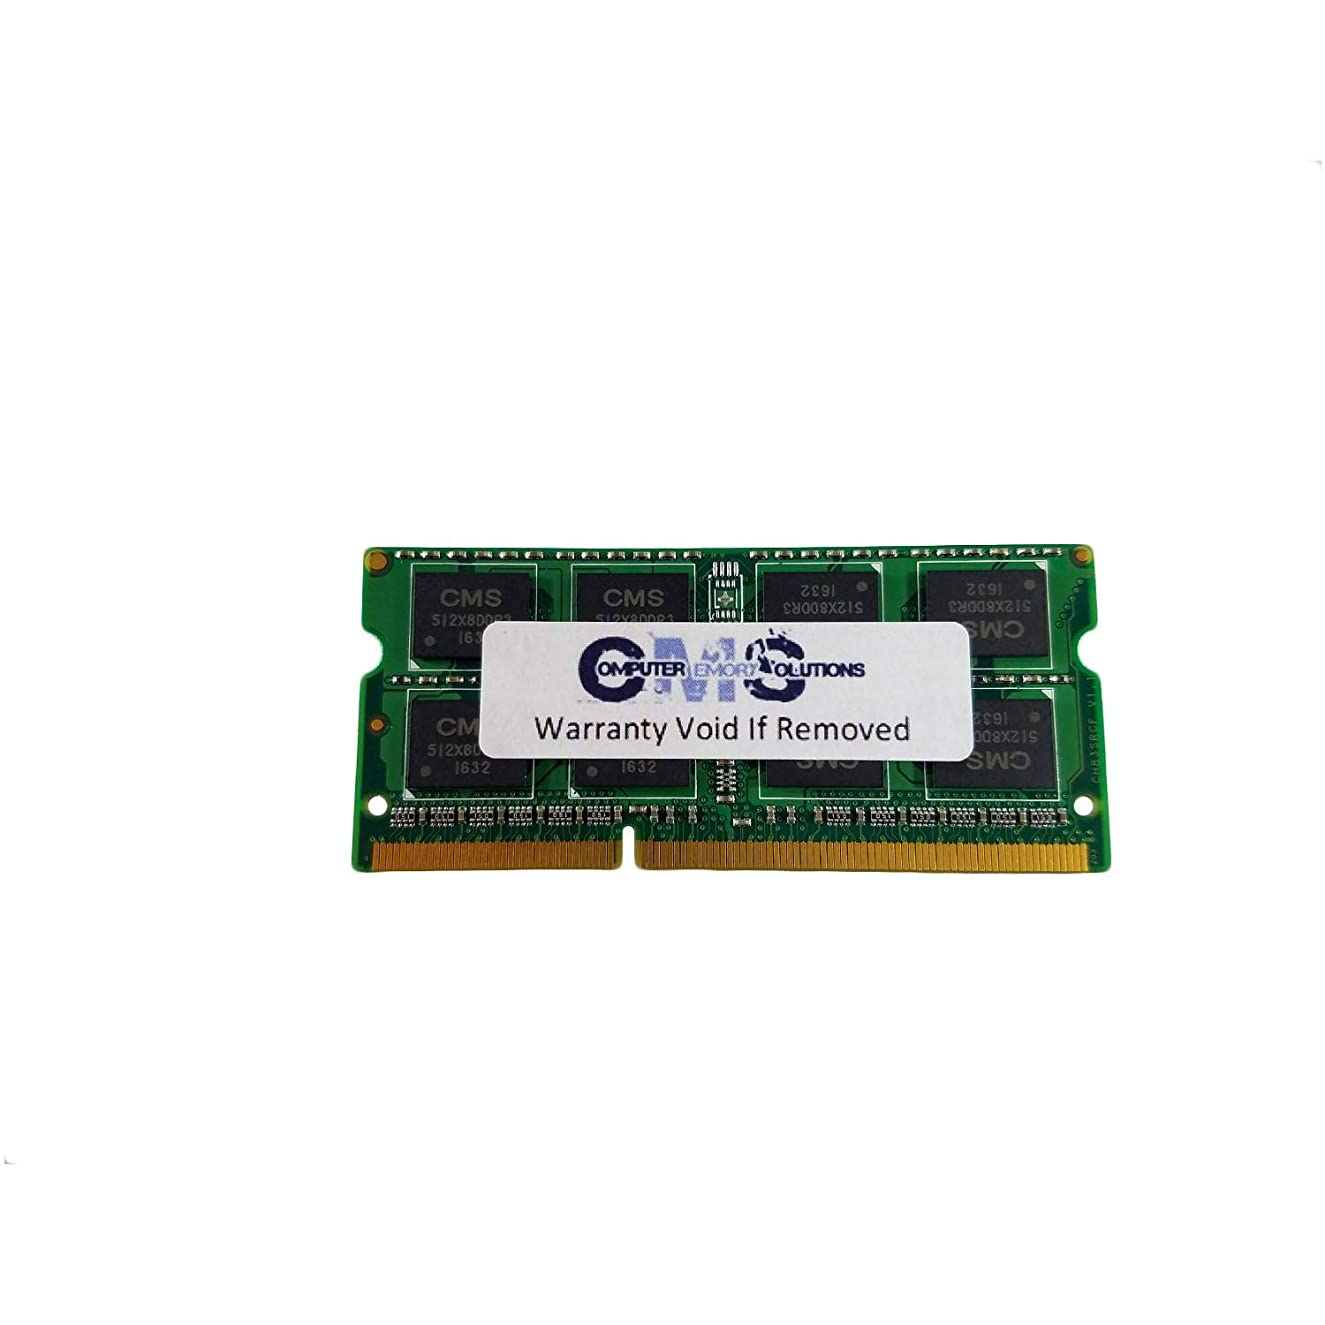 8Gb (1X8Gb) Memory Ram Compatible with Toshiba Satellite C855-S5111, C855D-S5351, C855-S5192 By CMS Brand (A14)